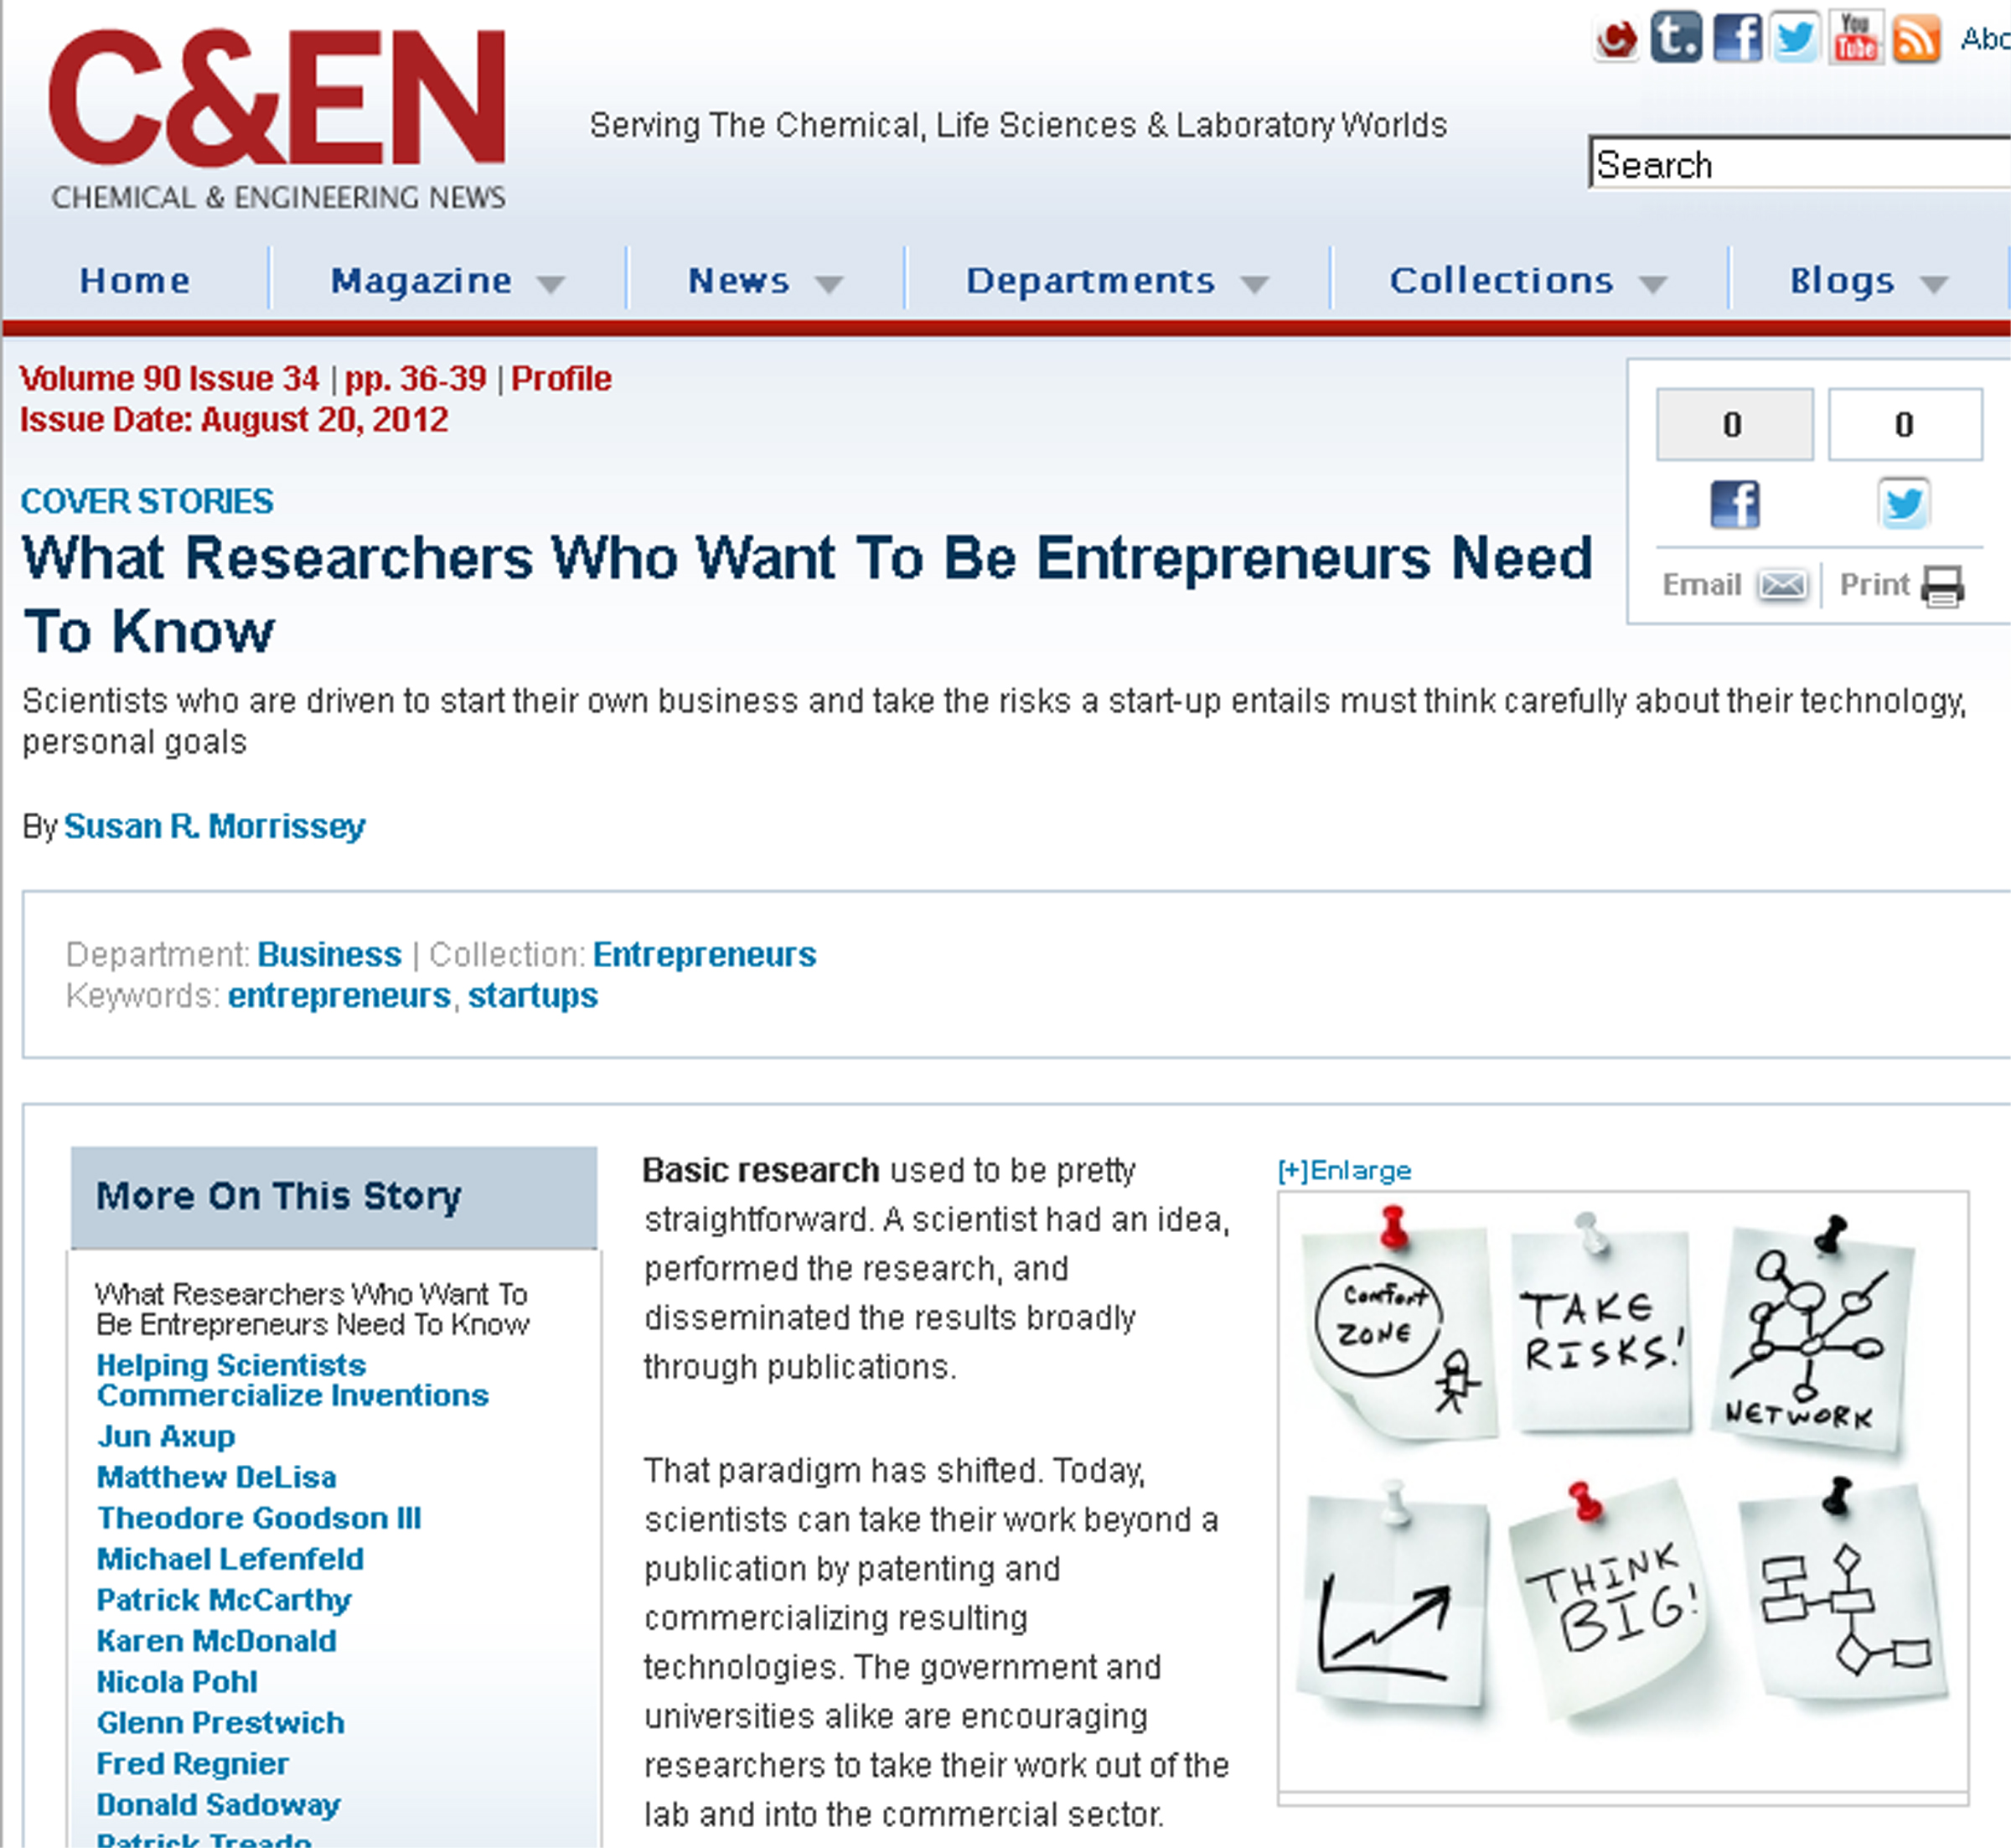 researchers who want to be entrepreneurs.jpg